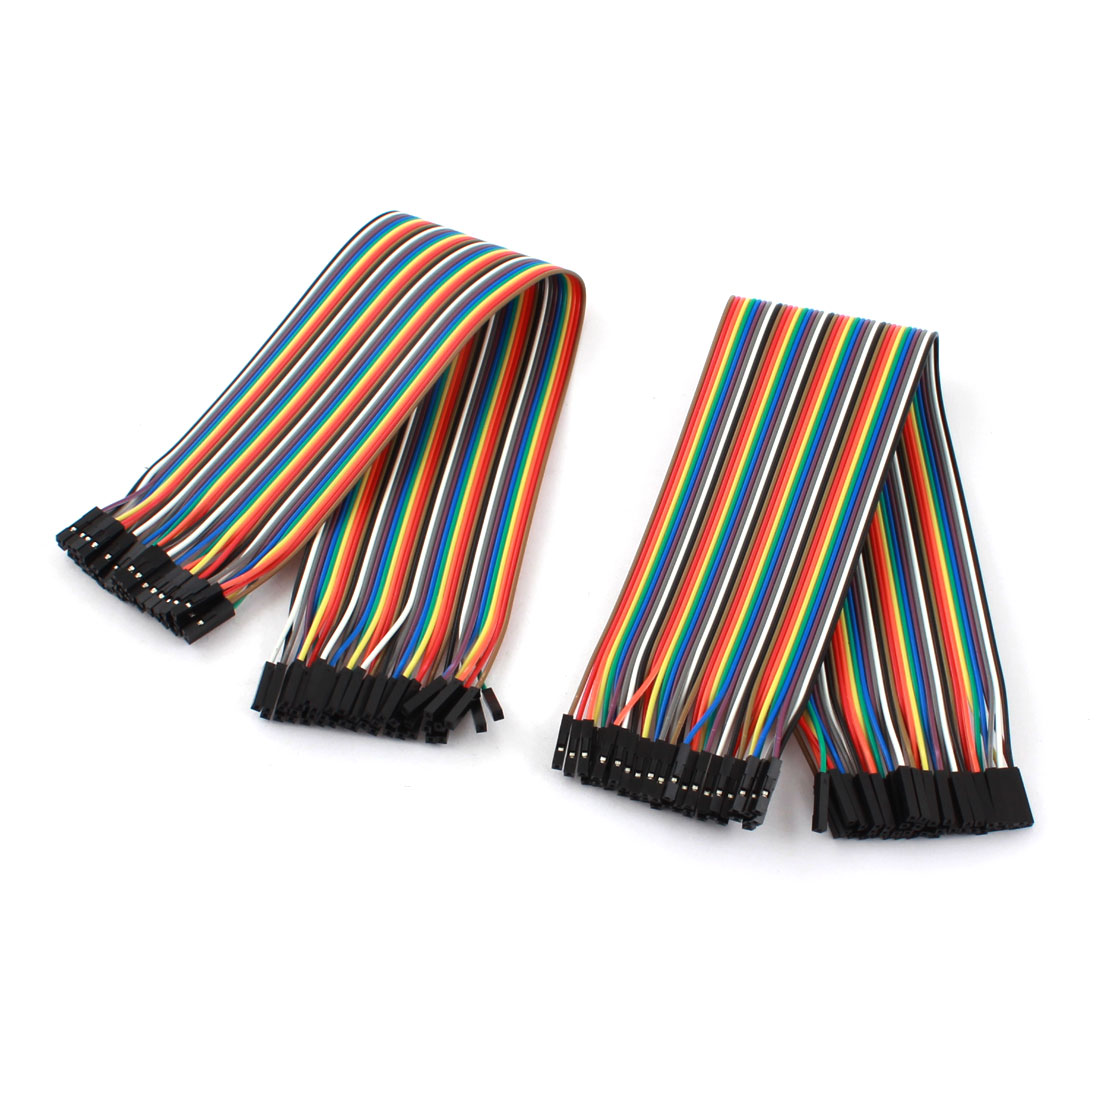 2 Pcs 1P-1P Female to Female Breadboard Connect Test Jumper Cable Wire 30cm